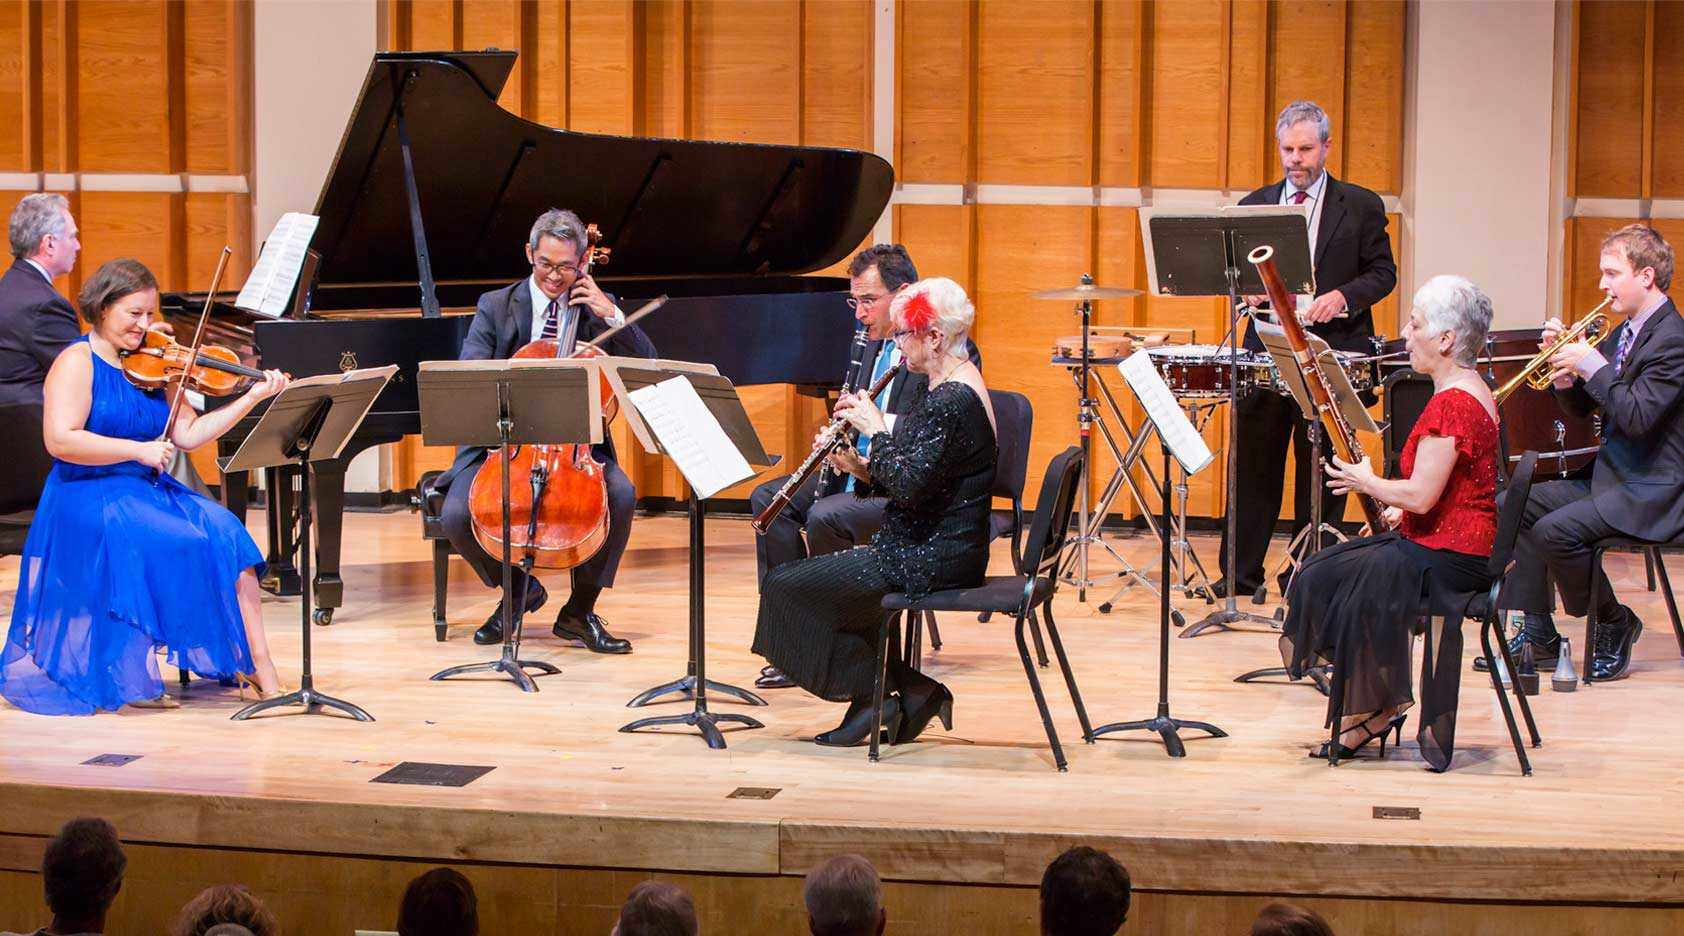 Philharmonic Ensembles at Merkin Concert Hall